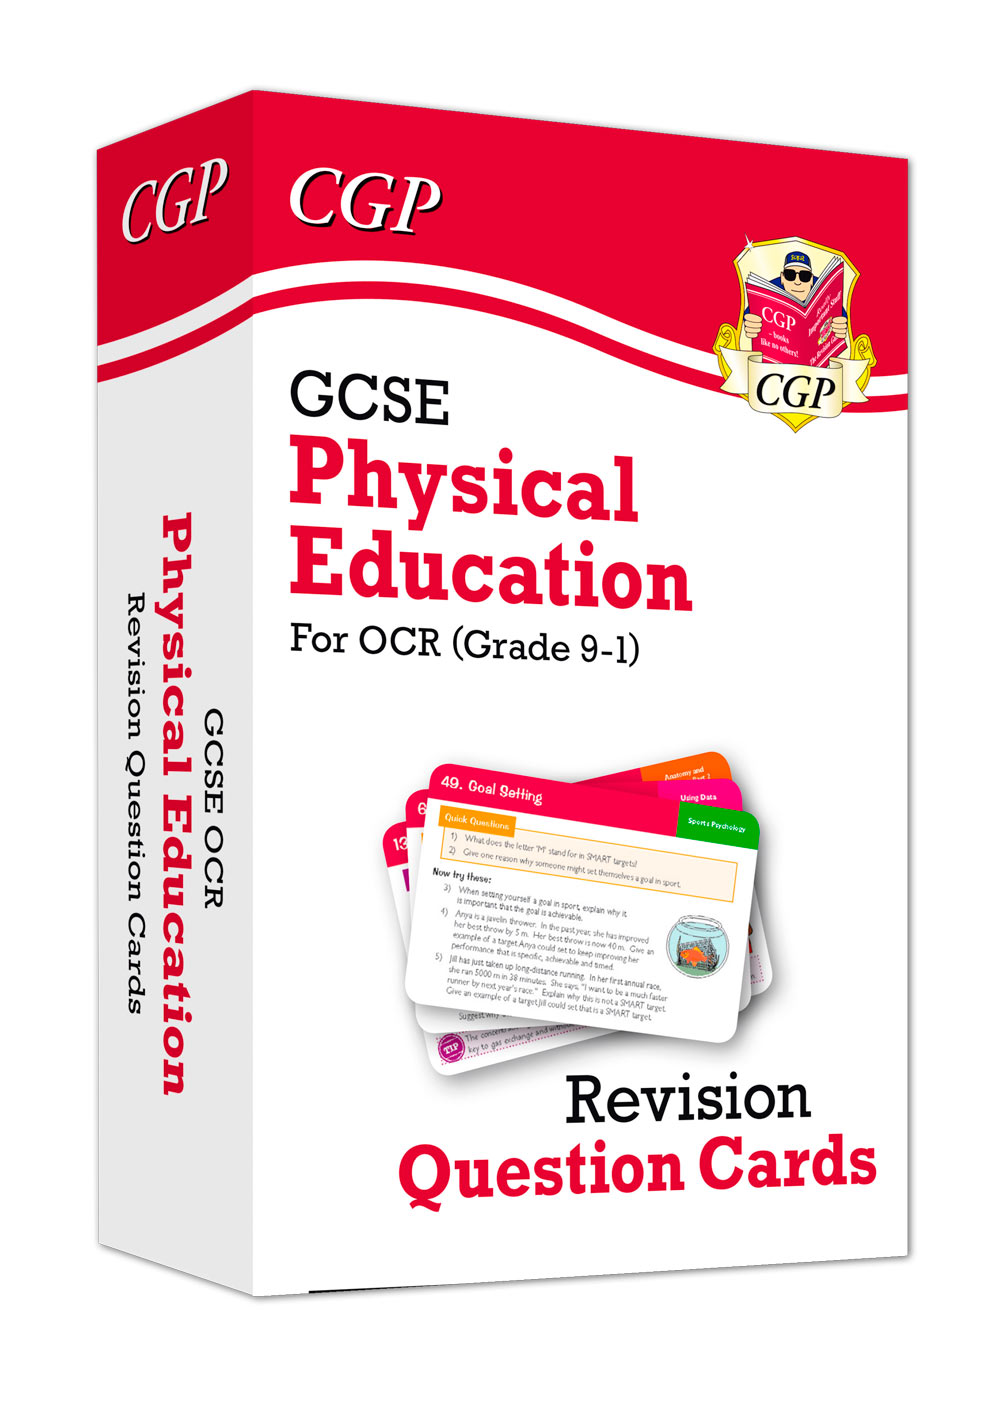 JRF41 - New Grade 9-1 GCSE Physical Education OCR Revision Question Cards